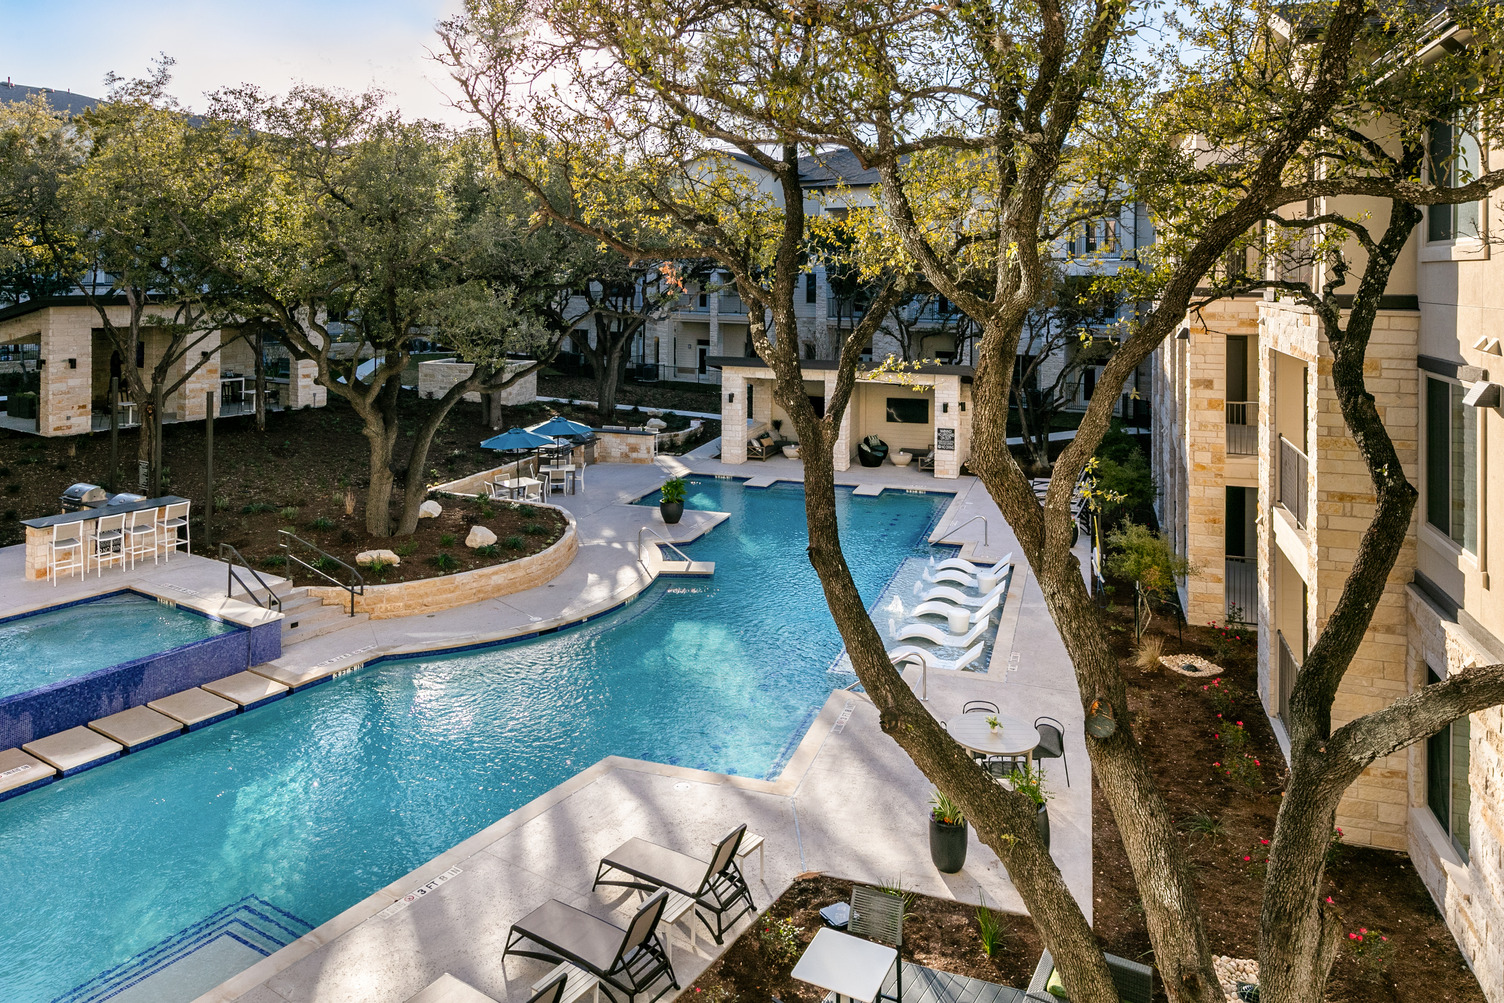 Resort-style community swimming pool with chairs and covered lounging